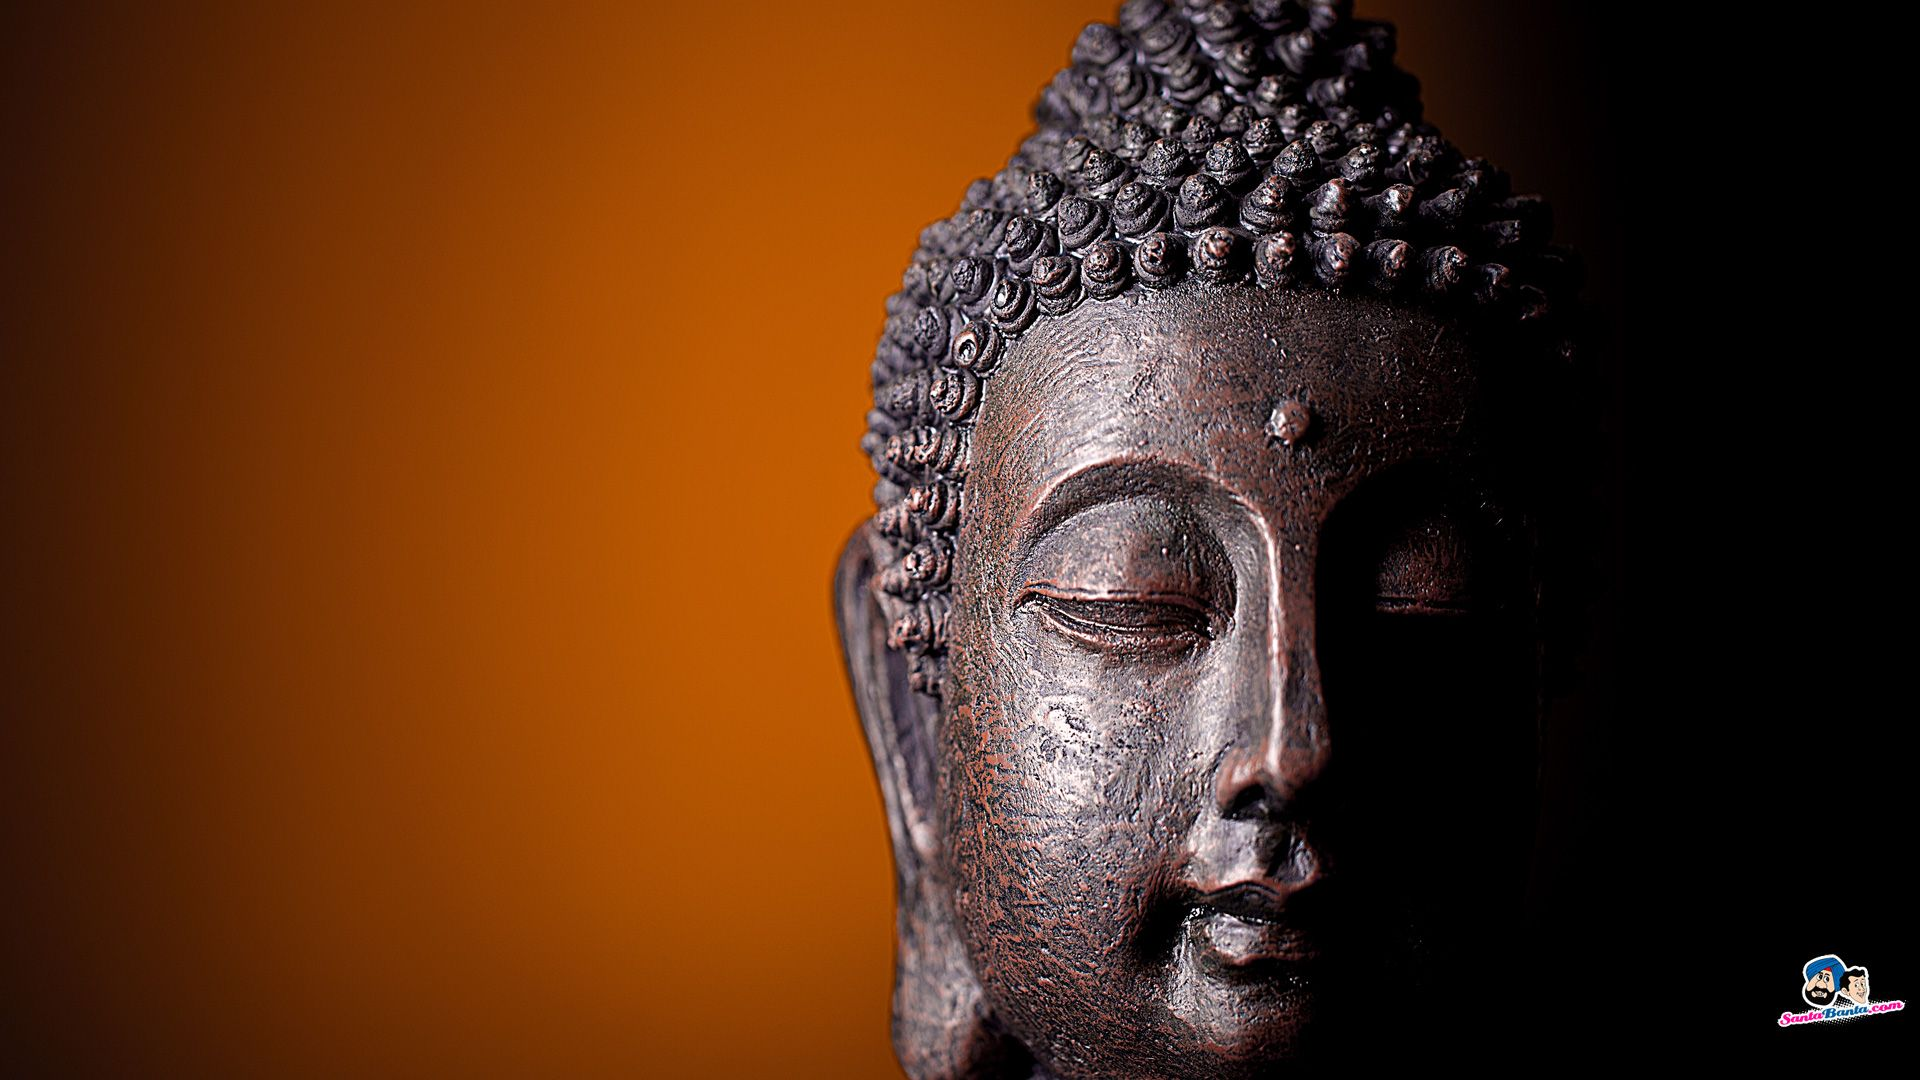 1920x1080 buddha wallpaper - live wallpaper HD Desktop Wallpapers